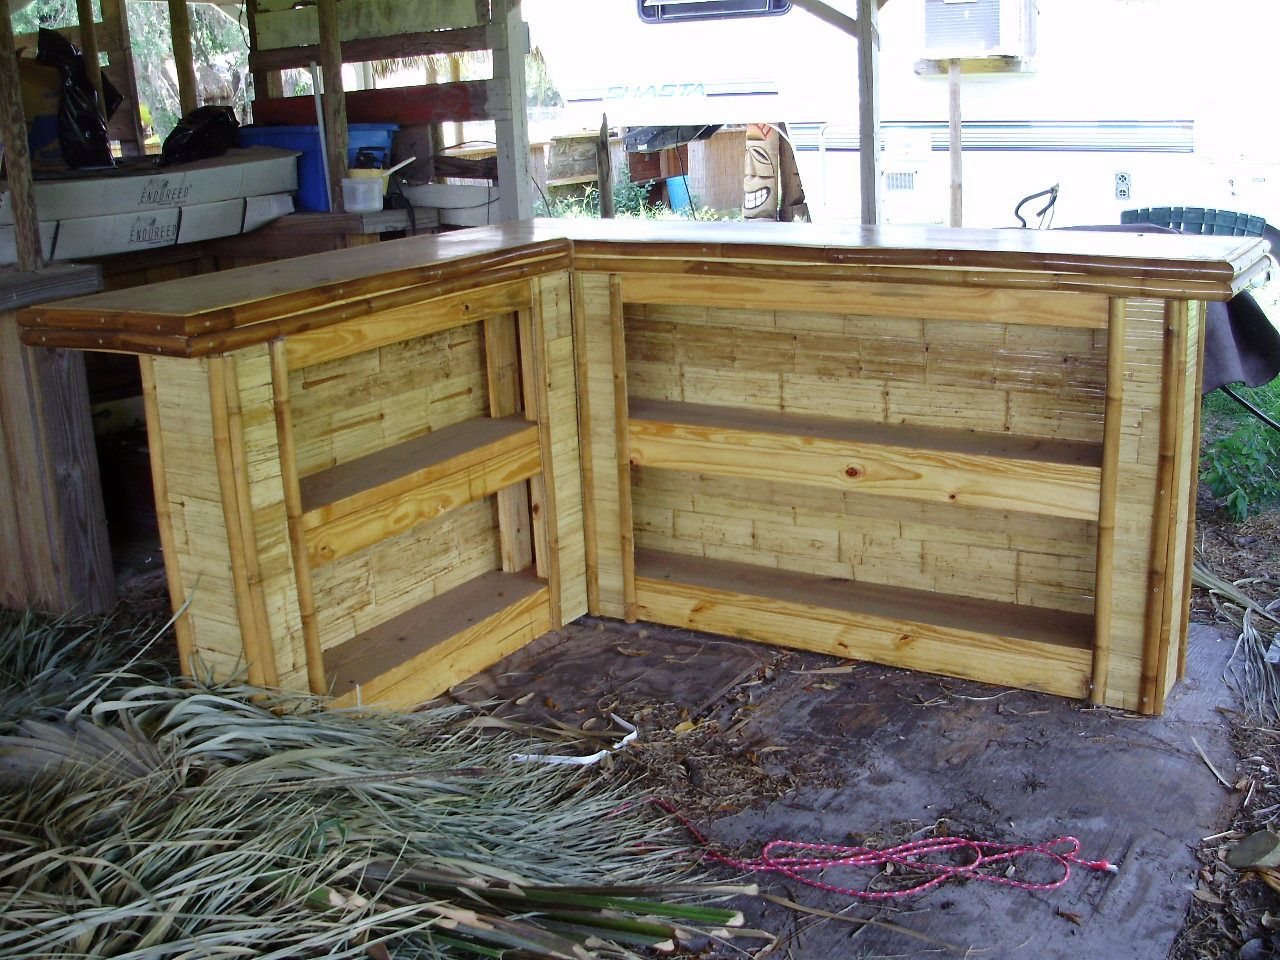 Superieur How To Build An Outdoor Bar | ... Shaped Small Flattened Bamboo Board Tiki  Bar With No Roof Insode View